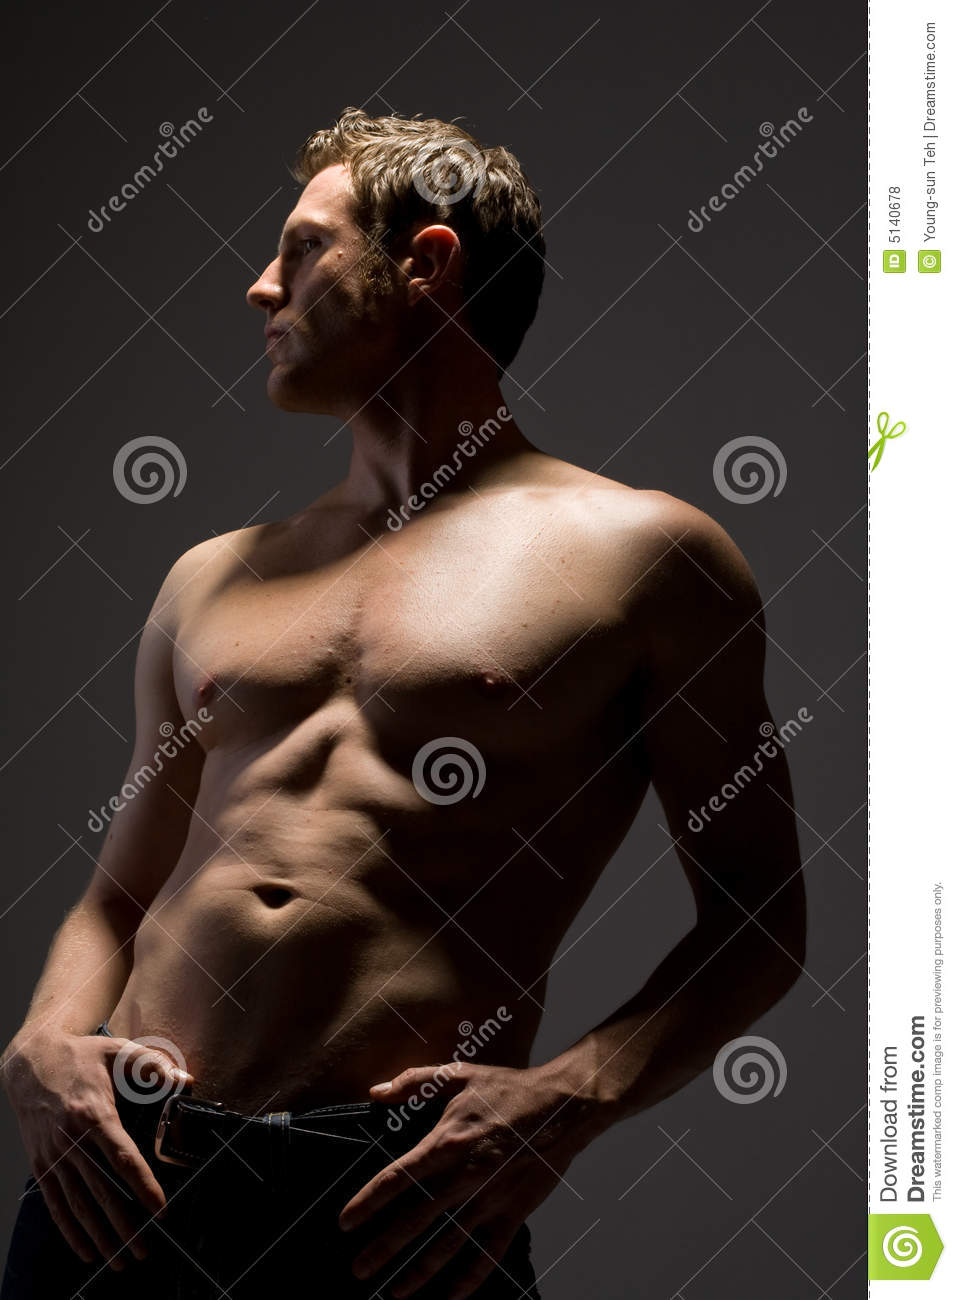 Uomo topless bello in jeans